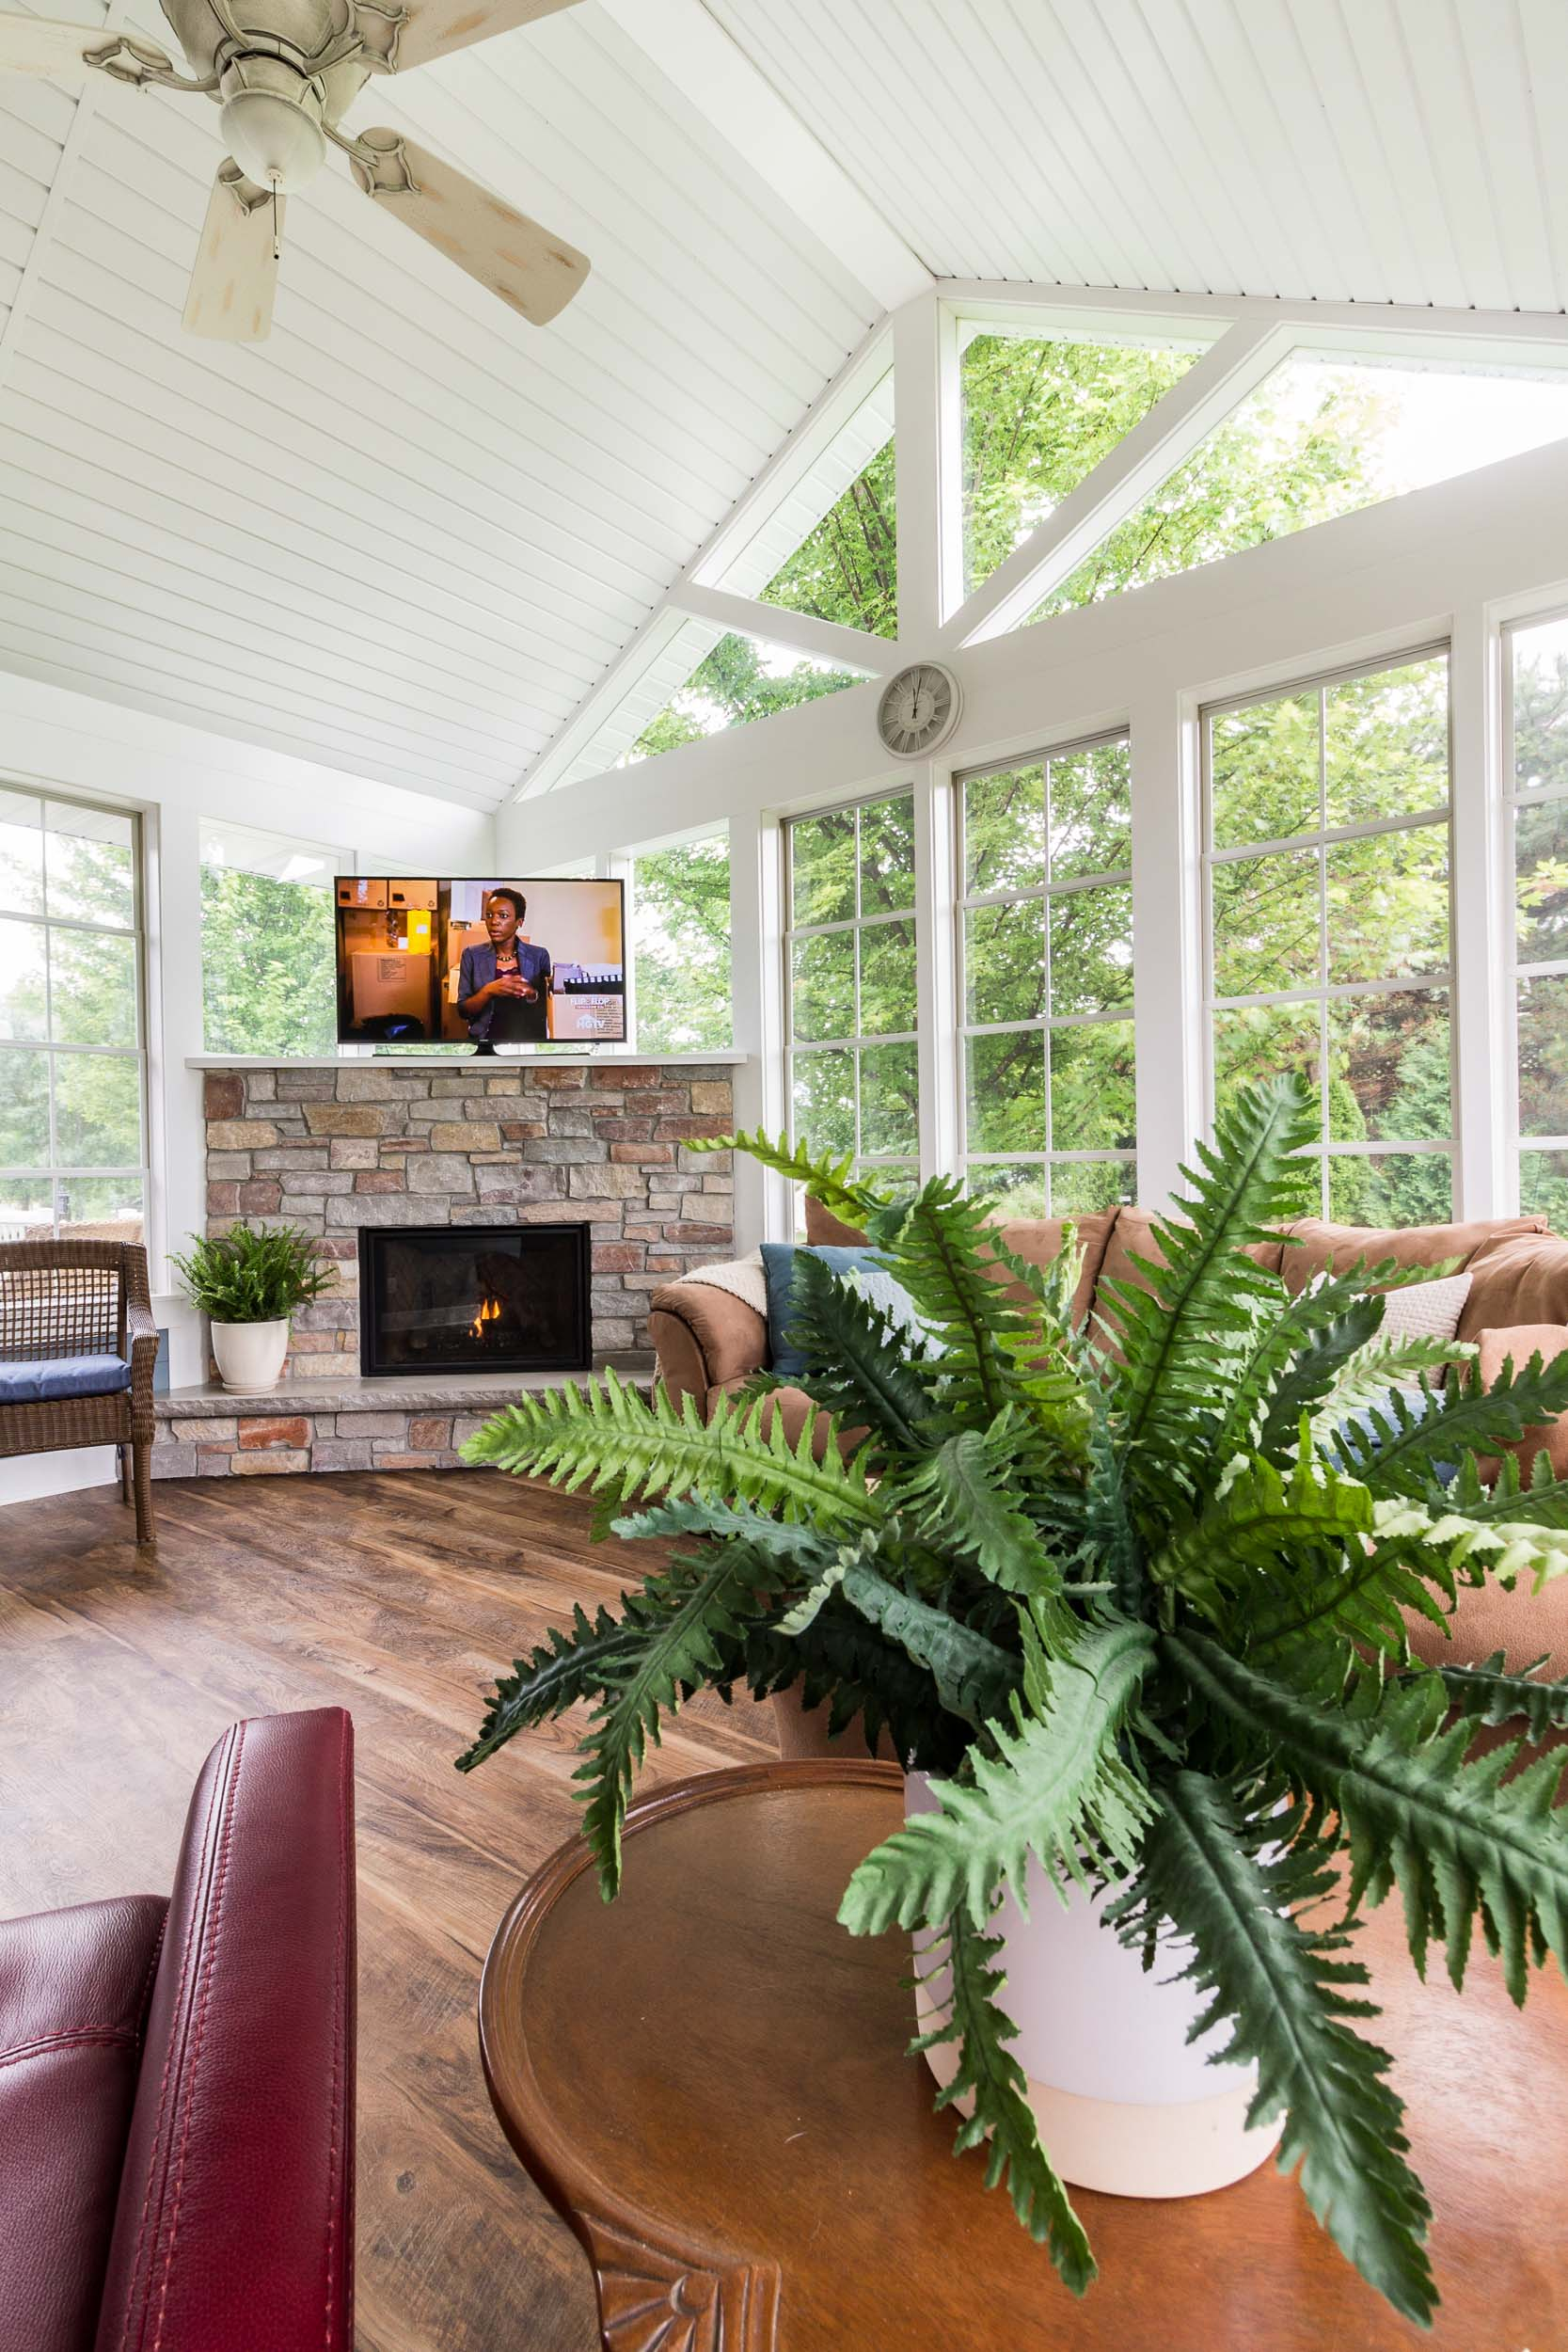 This New Three Season Porch Is Designed With A Connection To A Deck And Patio